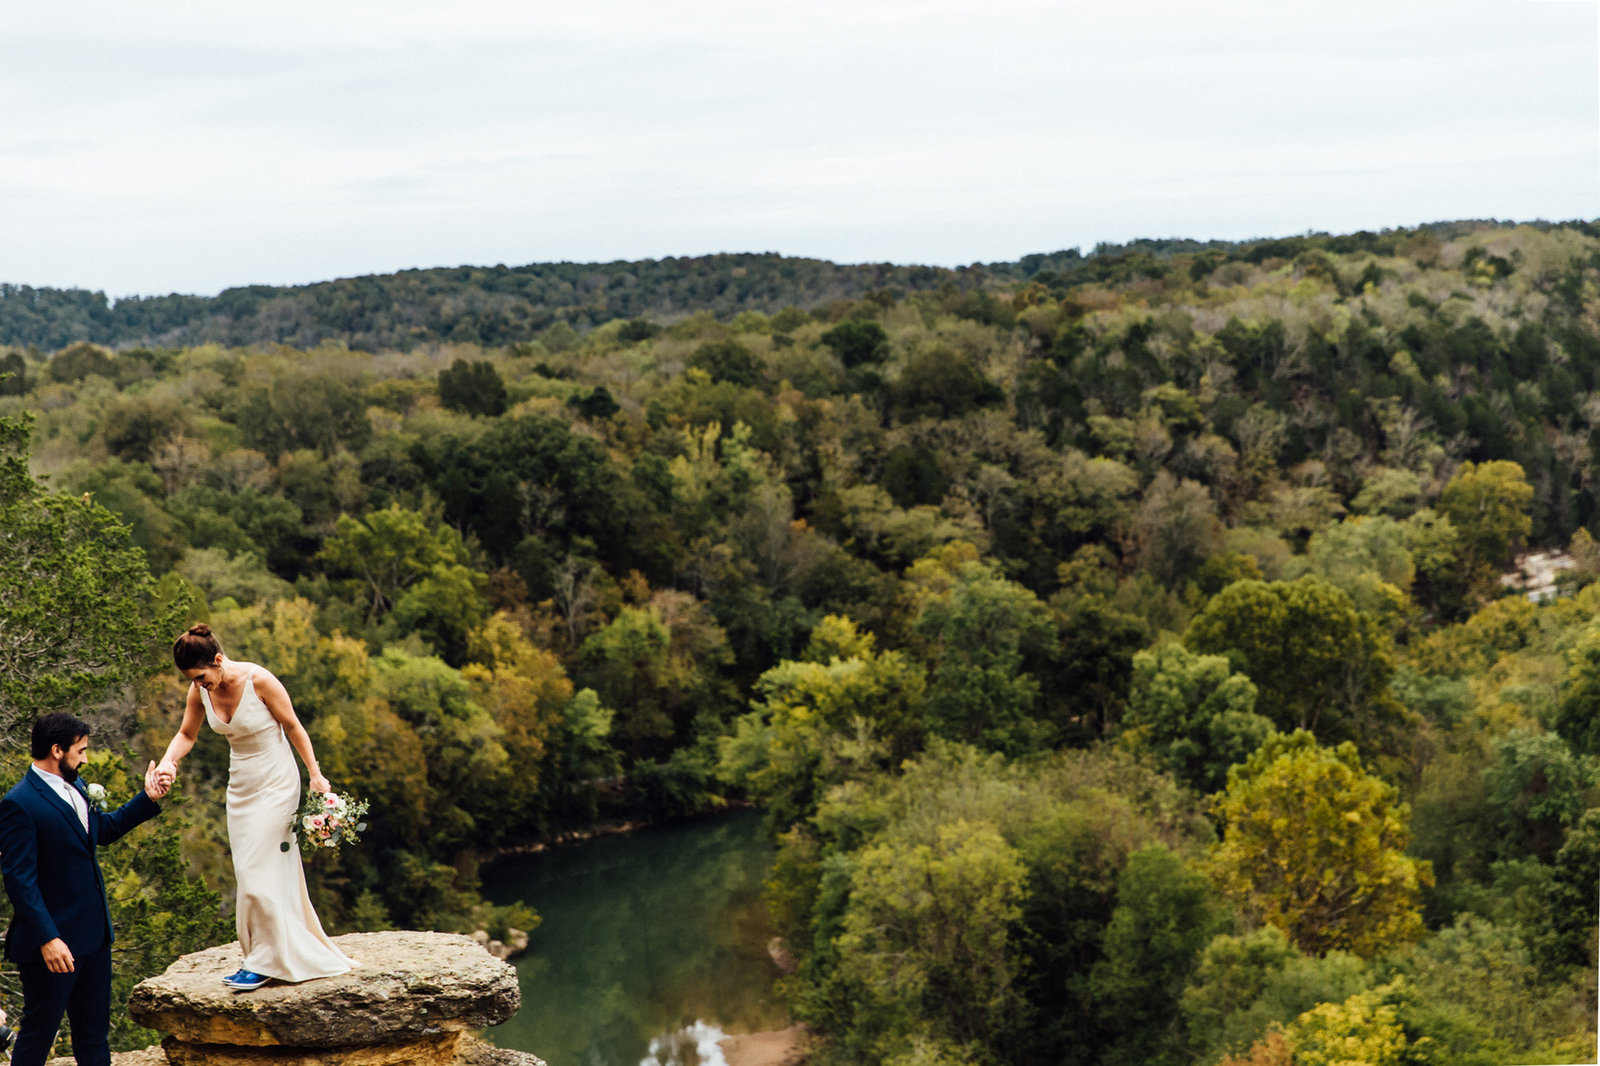 SaraLane-And-Stevie-Wedding-Elopement-Photography-Kendyl-Adam-Nashville-Tennessee-LR-128